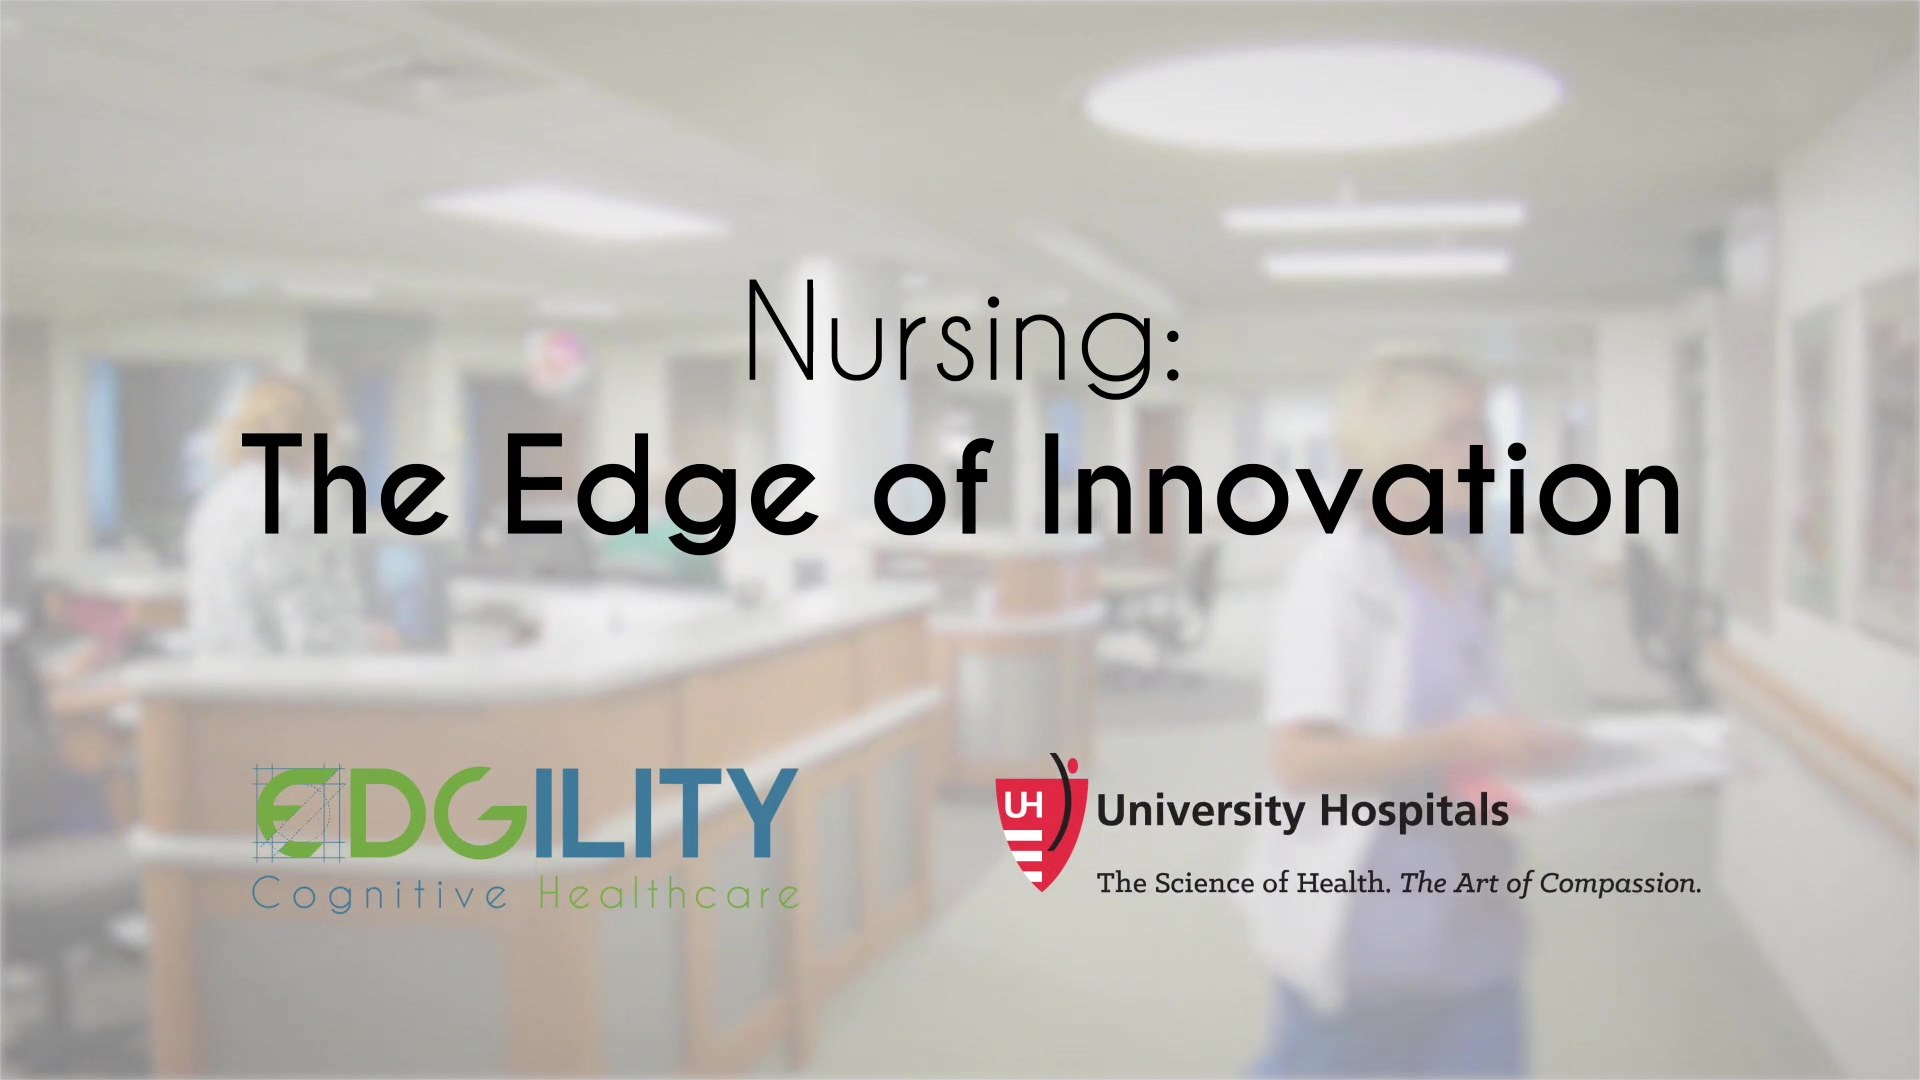 UH Nursing Innovation - Edgility